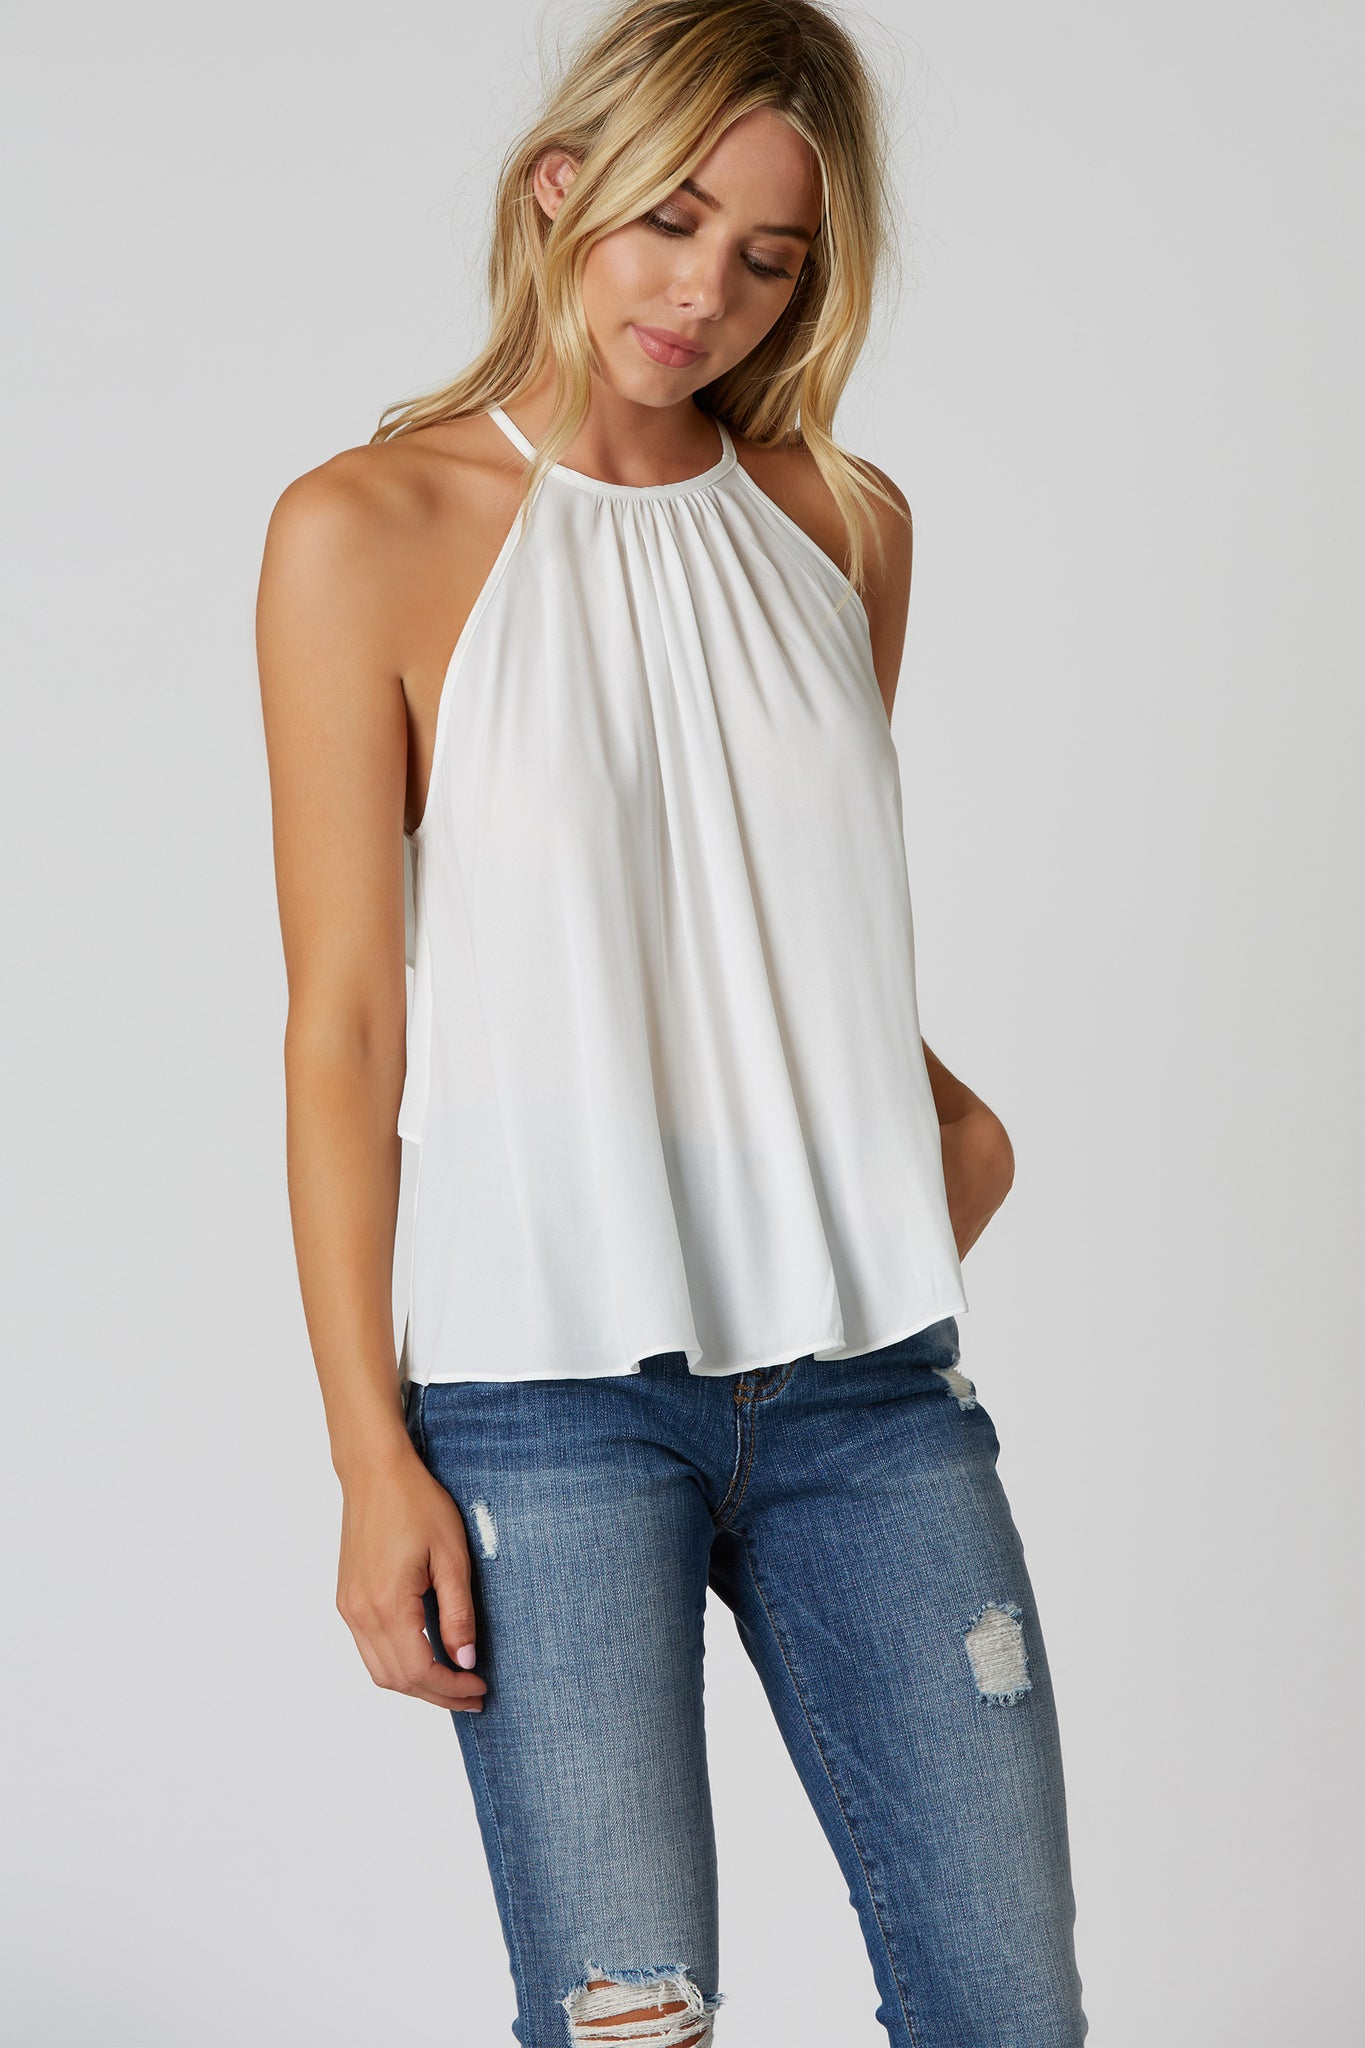 High neck sleeveless chiffon top with flowy A-line hem. Ruffled back with buttons for closure.